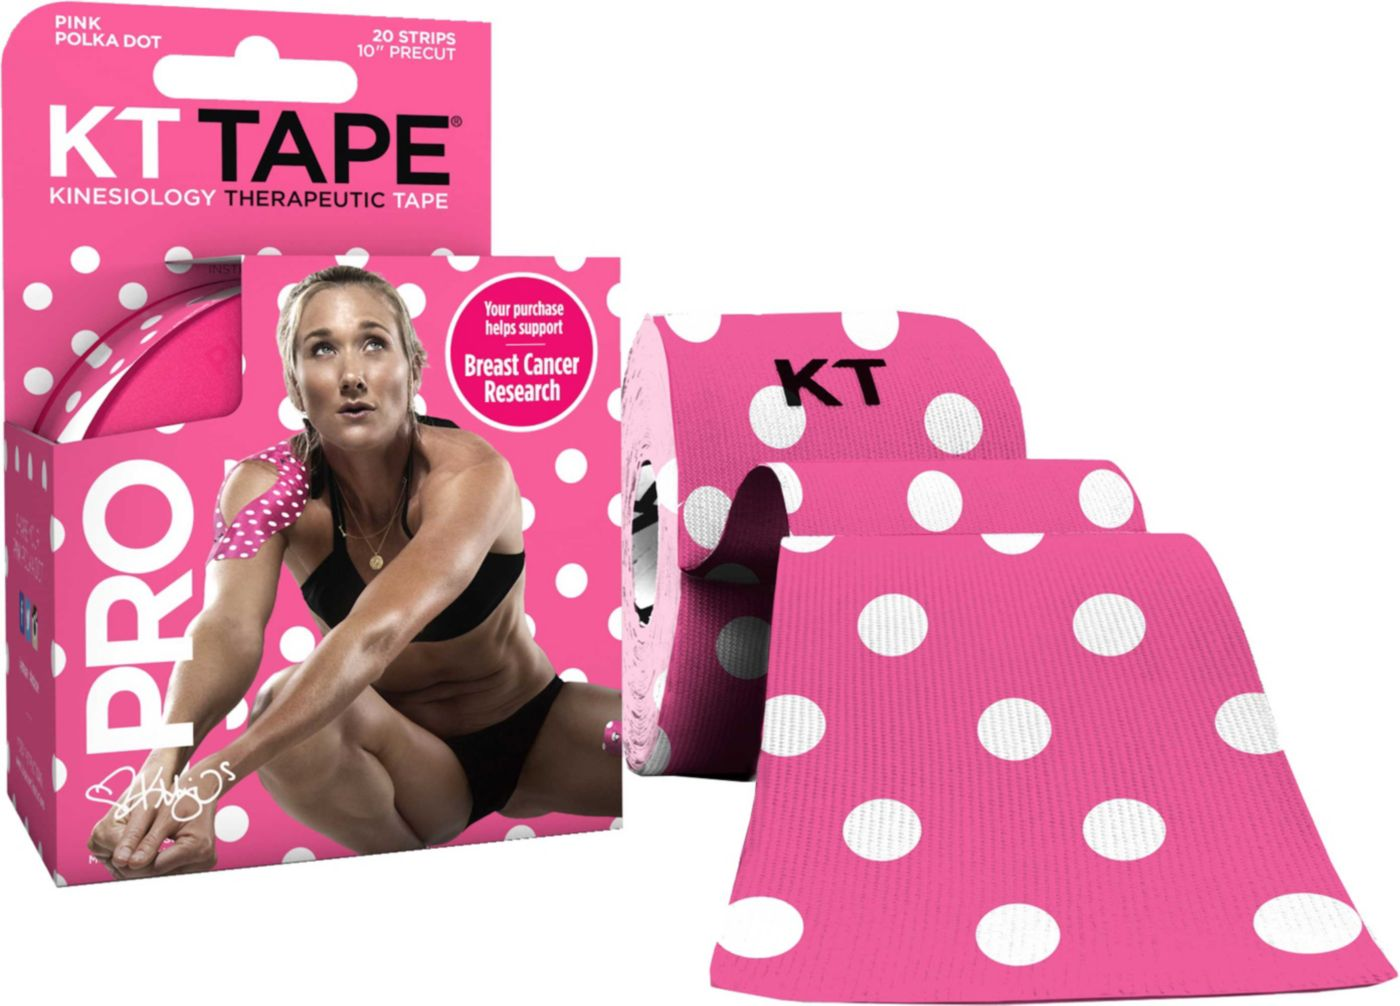 KT TAPE PRO Limited Edition Pink Polka Dot Kinesiology Tape